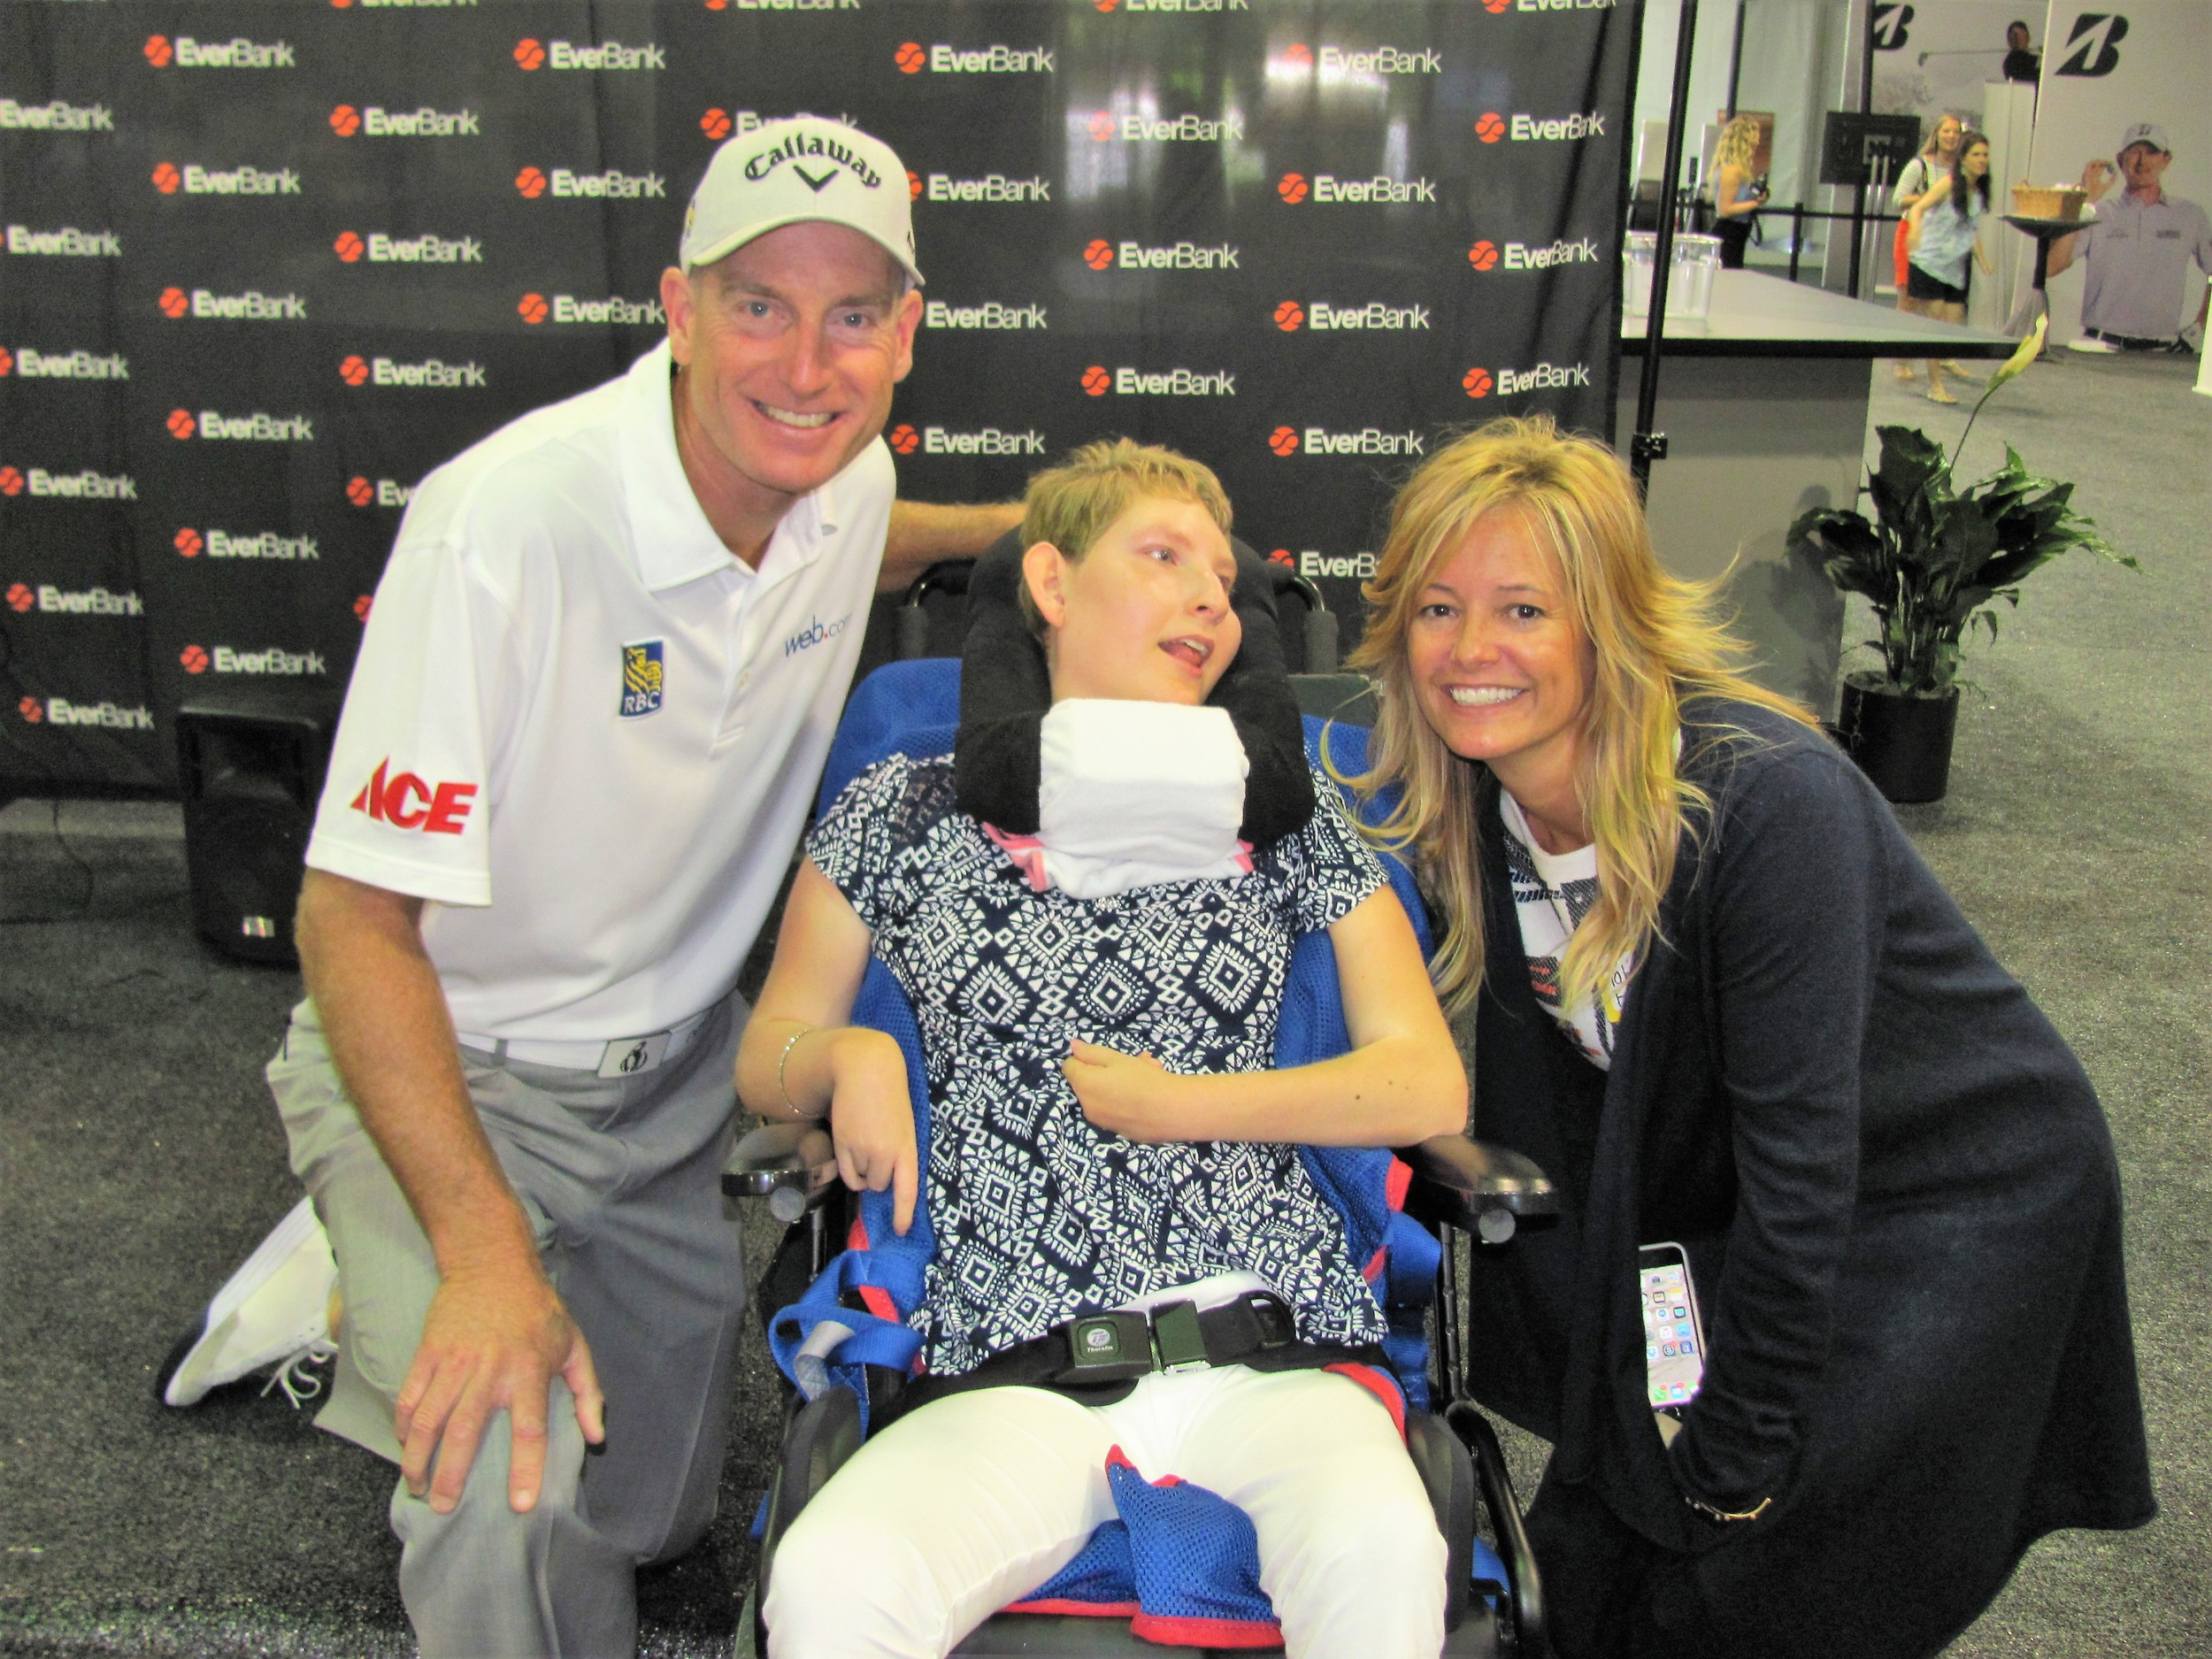 Jim and Tabitha Furyk greet one of the children from Community PedsCare.